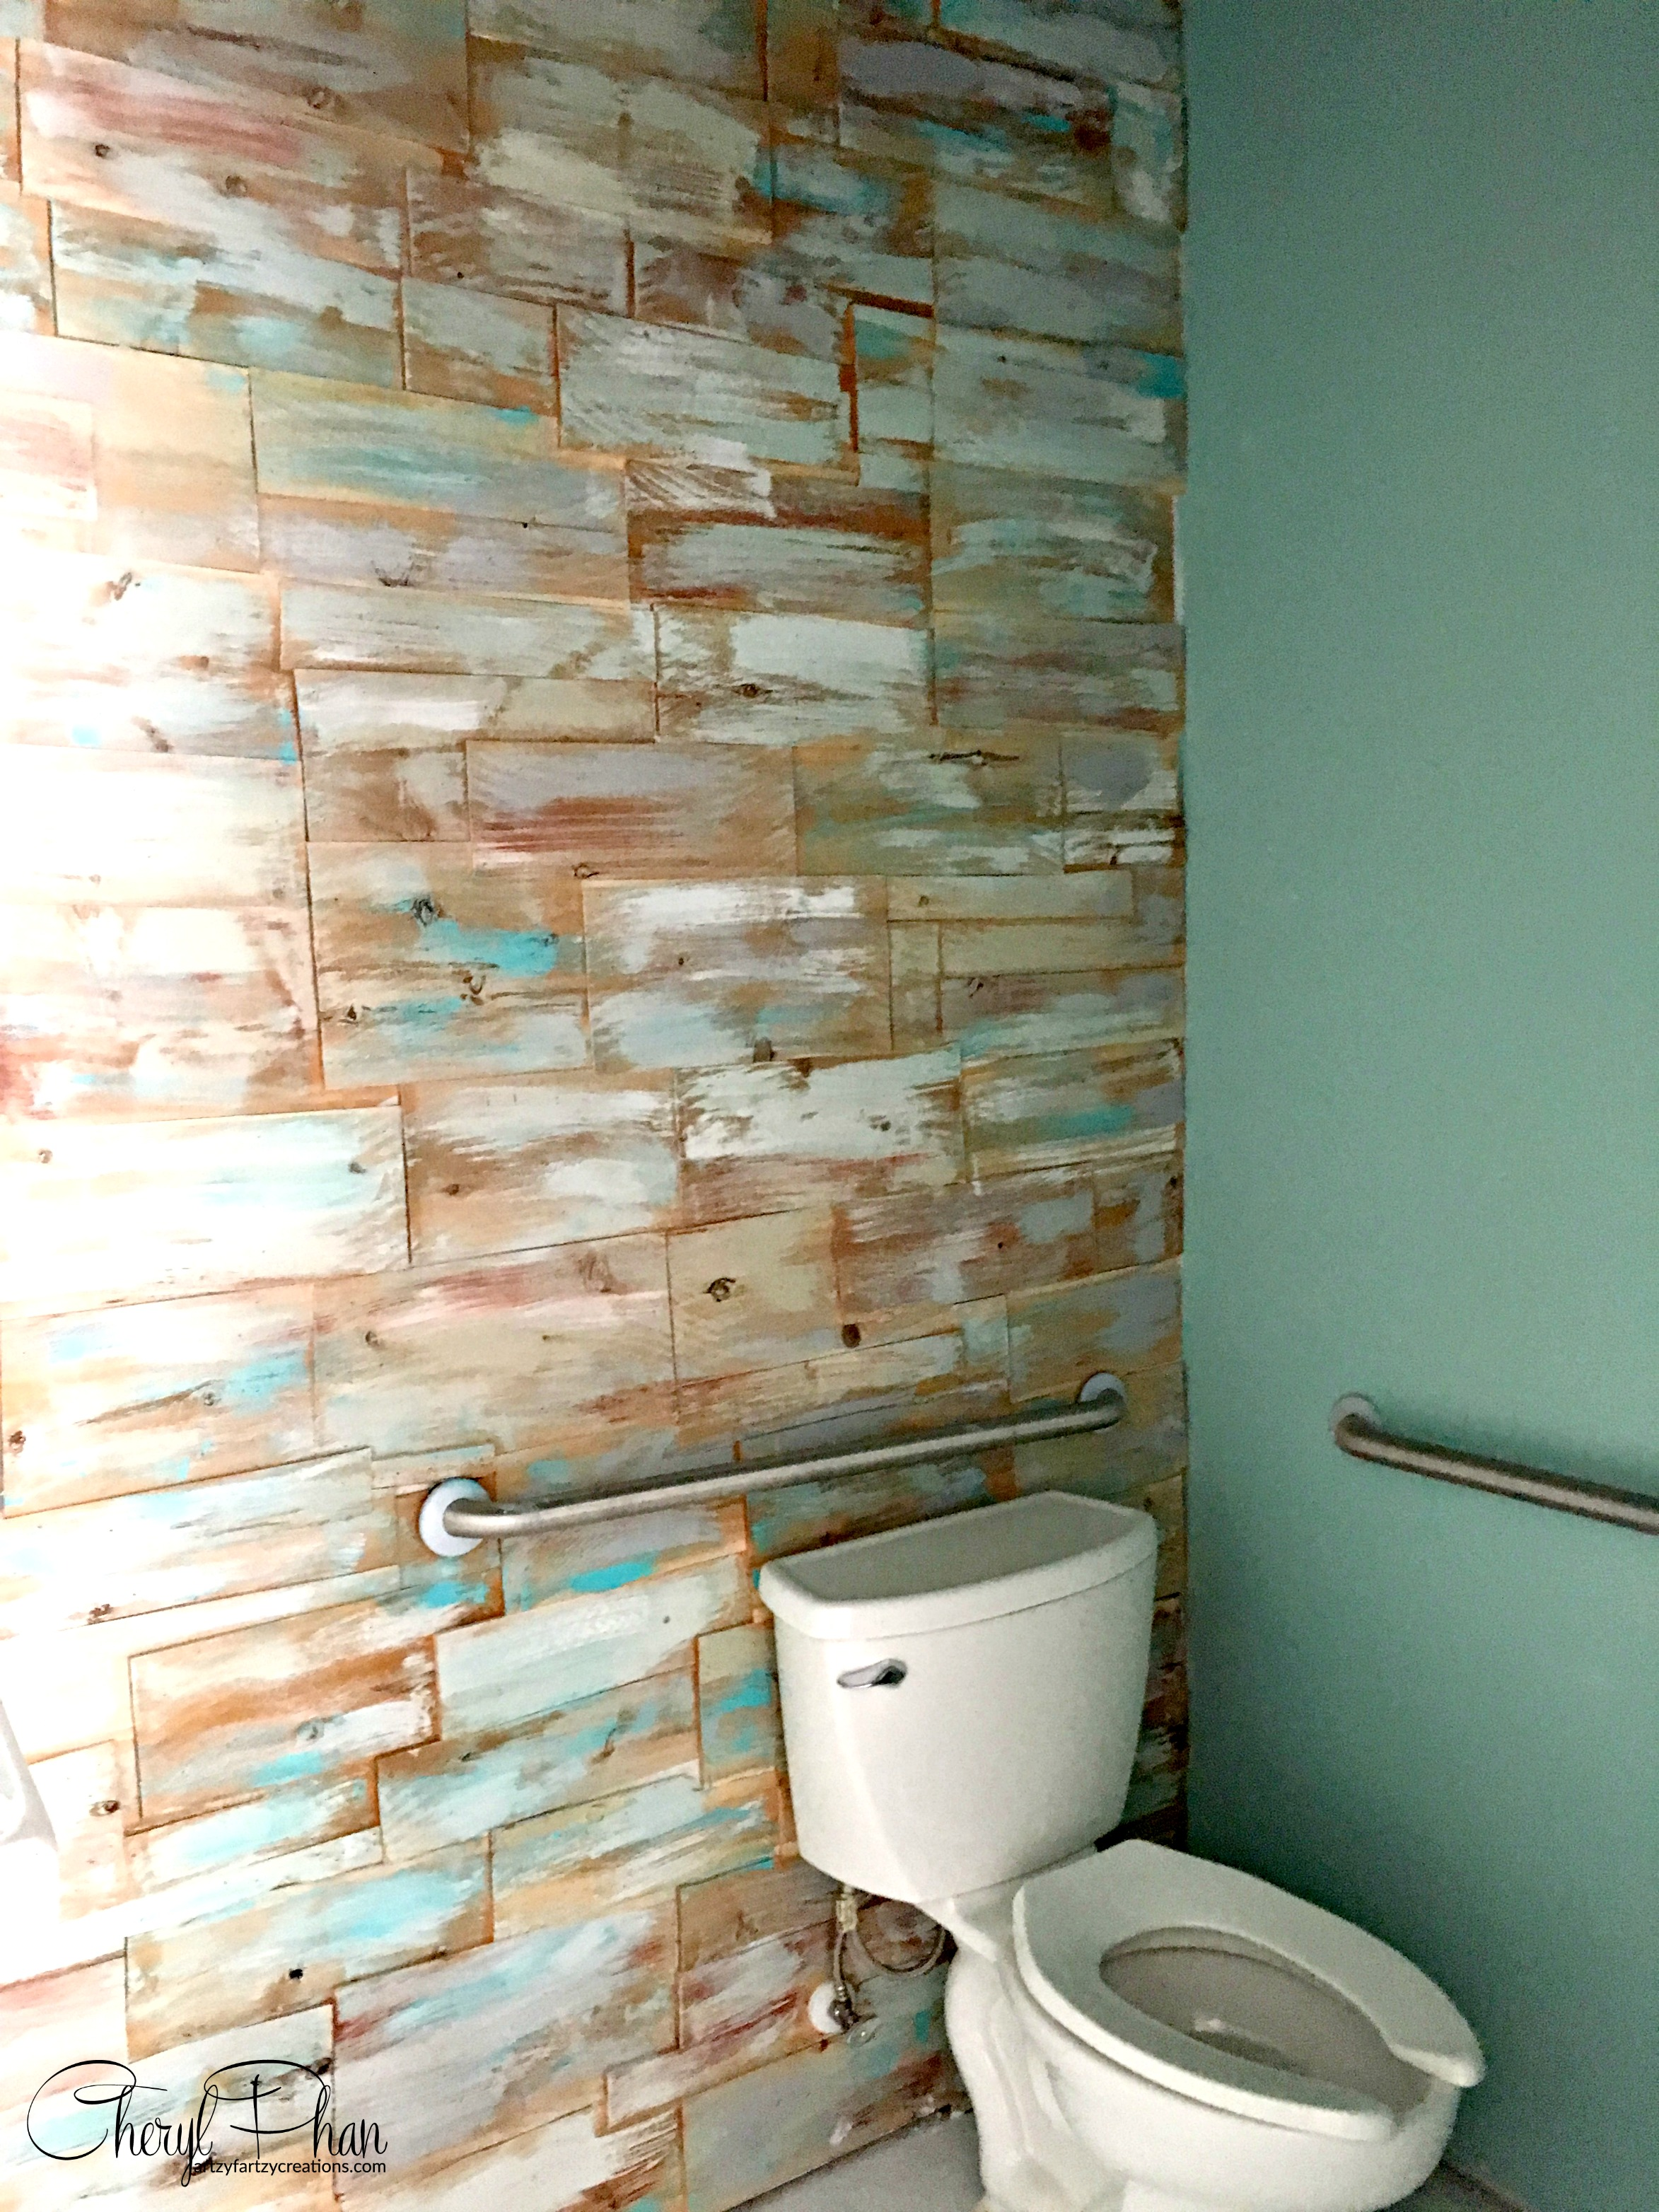 DIY Cedar Wall - Wood Plank Accent wall | Cheryl Phan